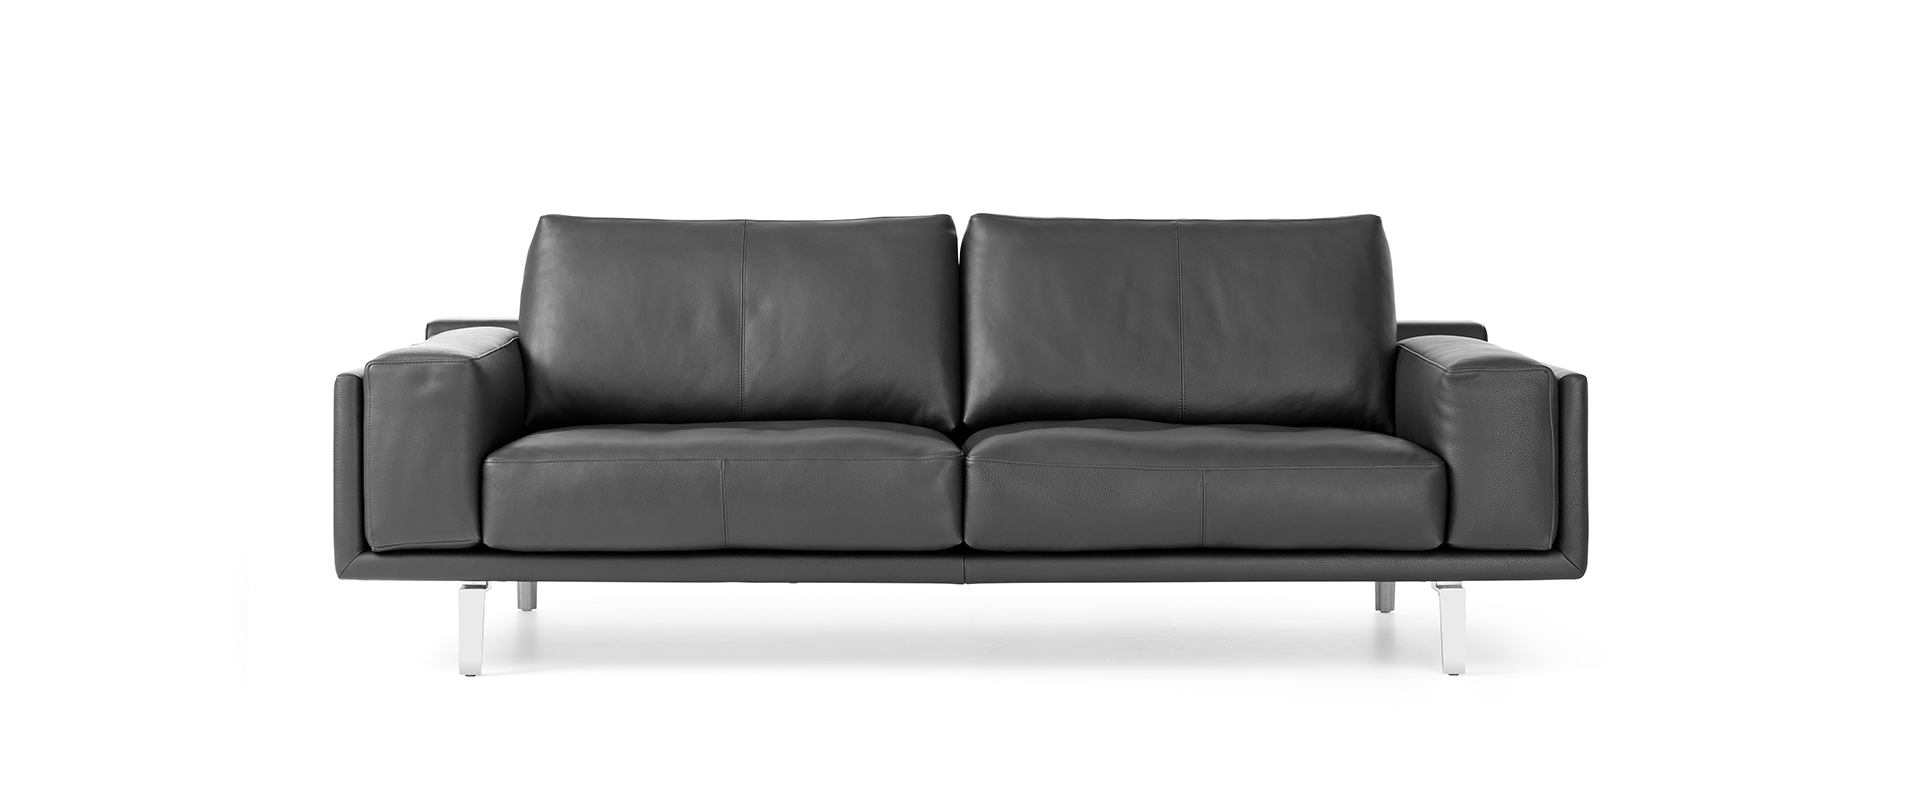 Sofa bellice by leolux design sofa bellice by leolux parisarafo Image collections